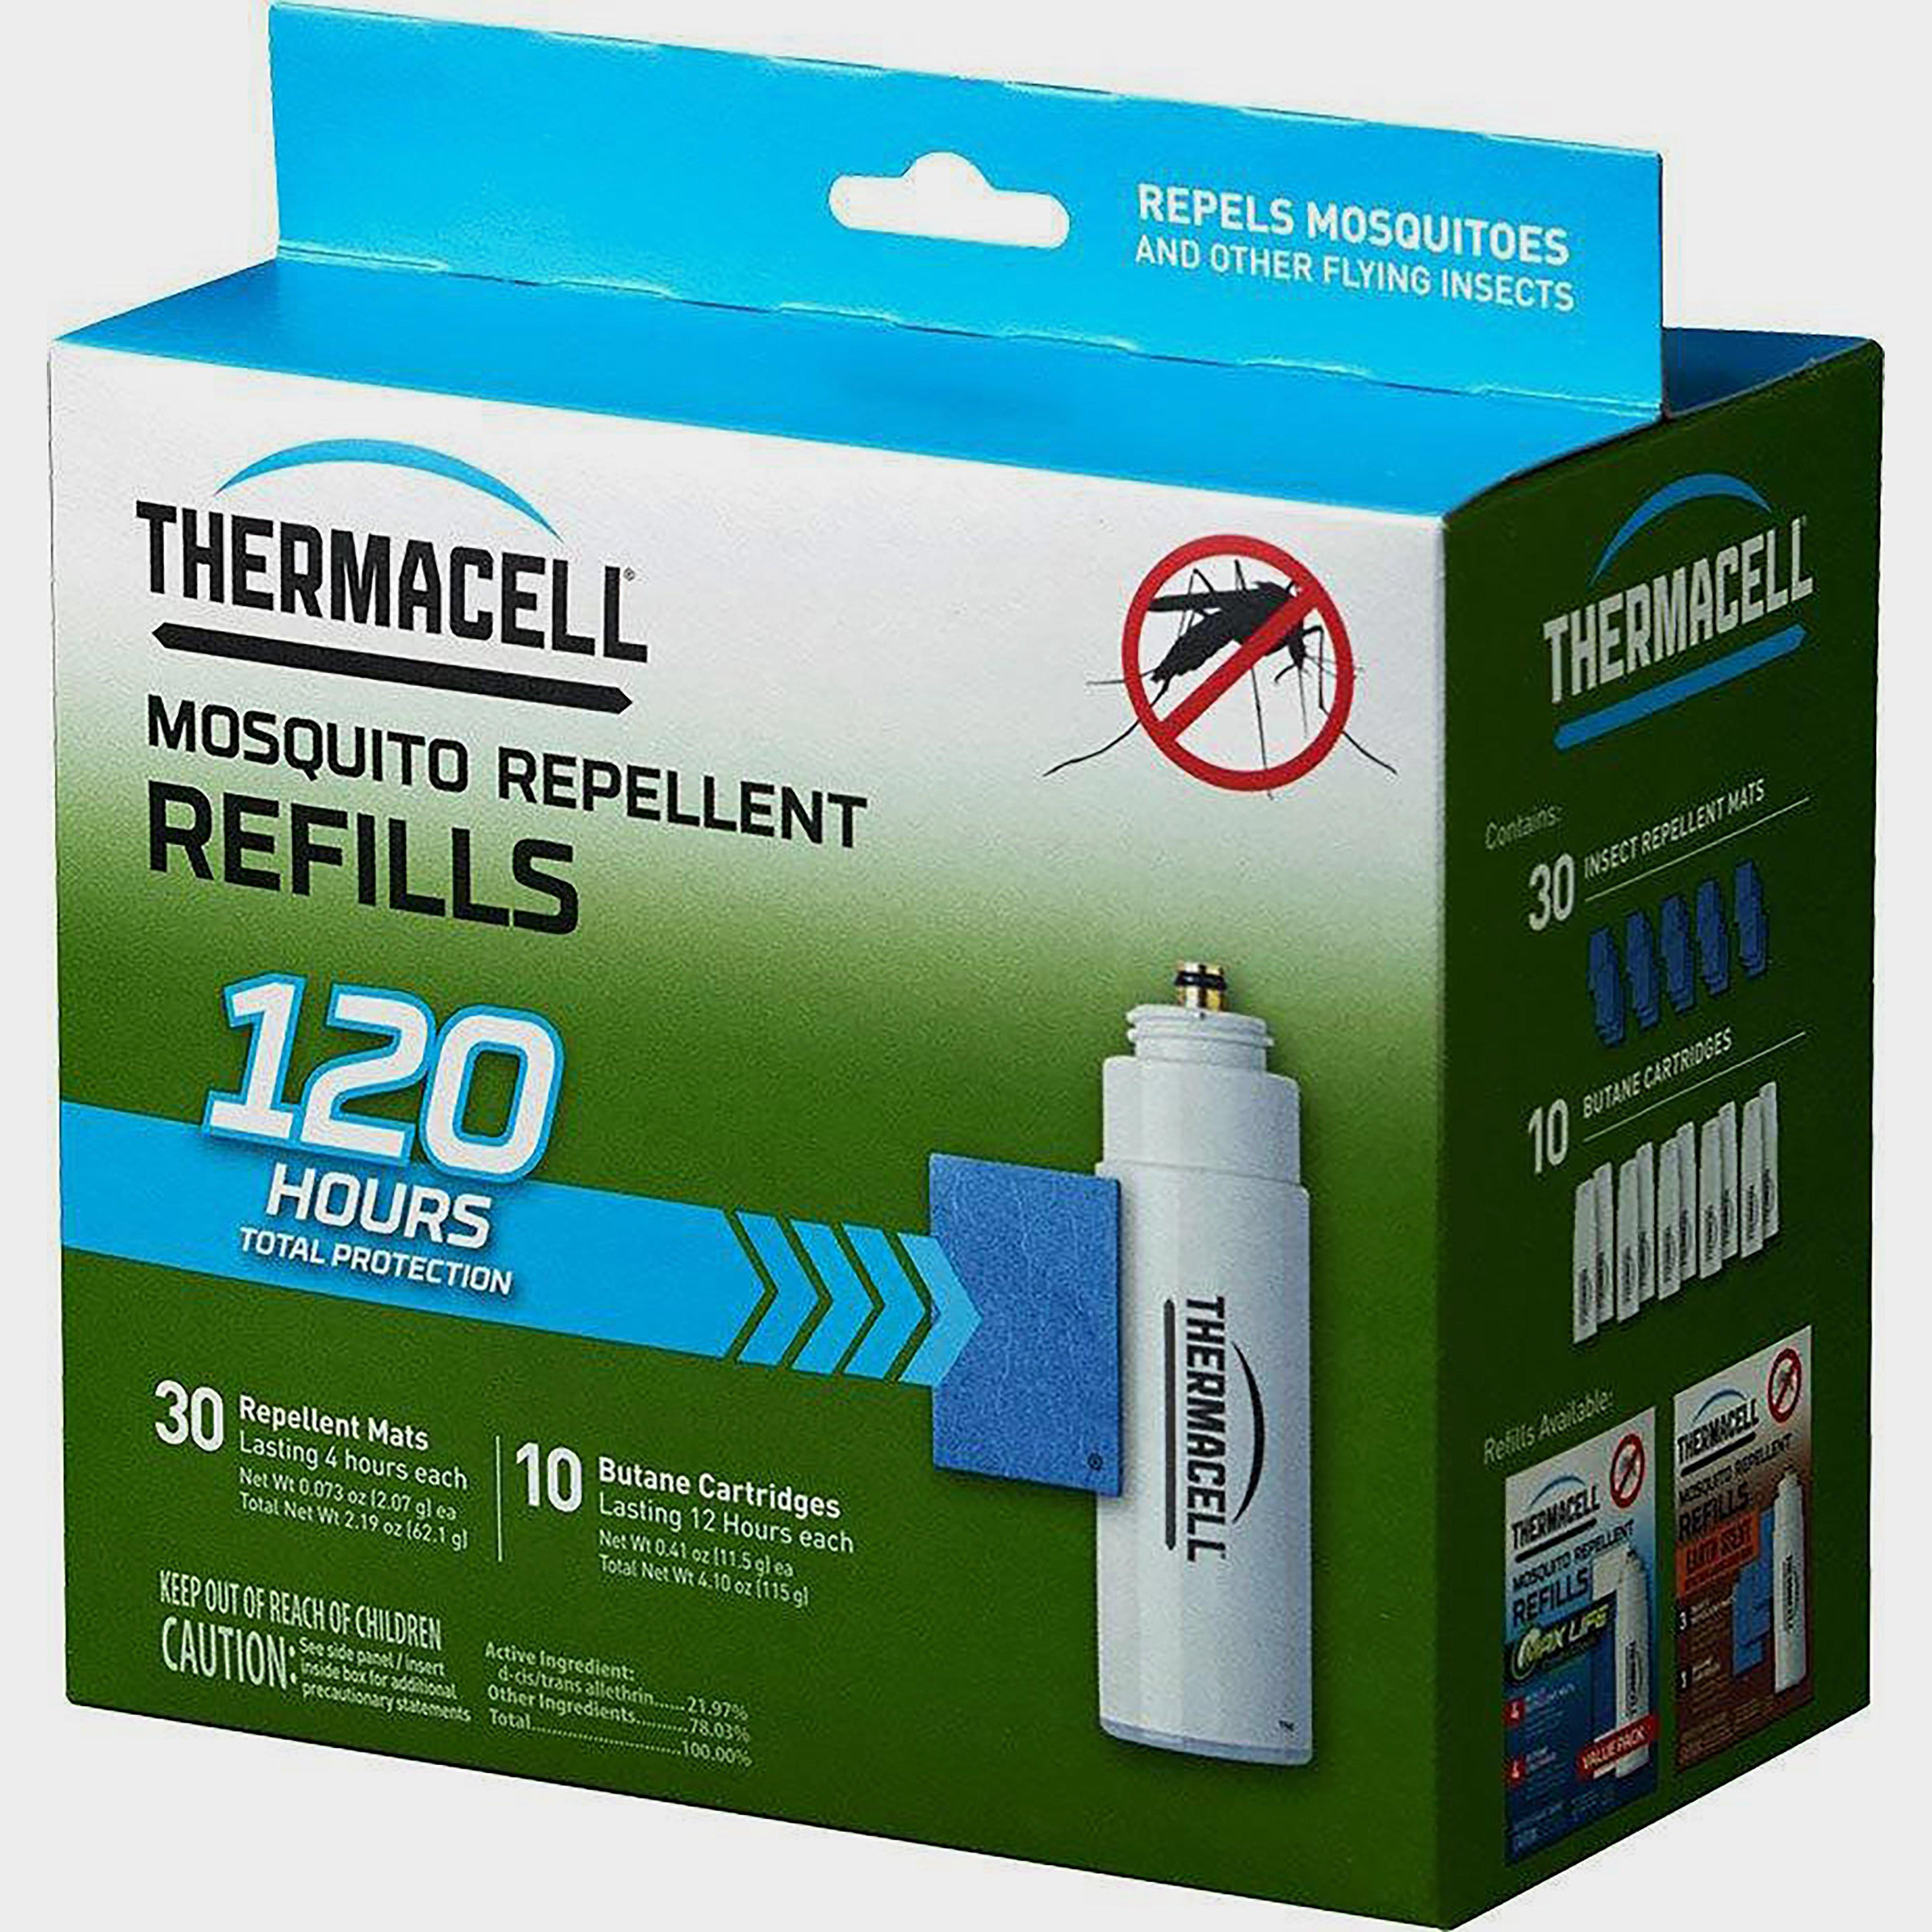 Thermacell Original Mosquito Repeller Refills (Mega Pack) - No Colour/No Colour, No Colour/No Colour